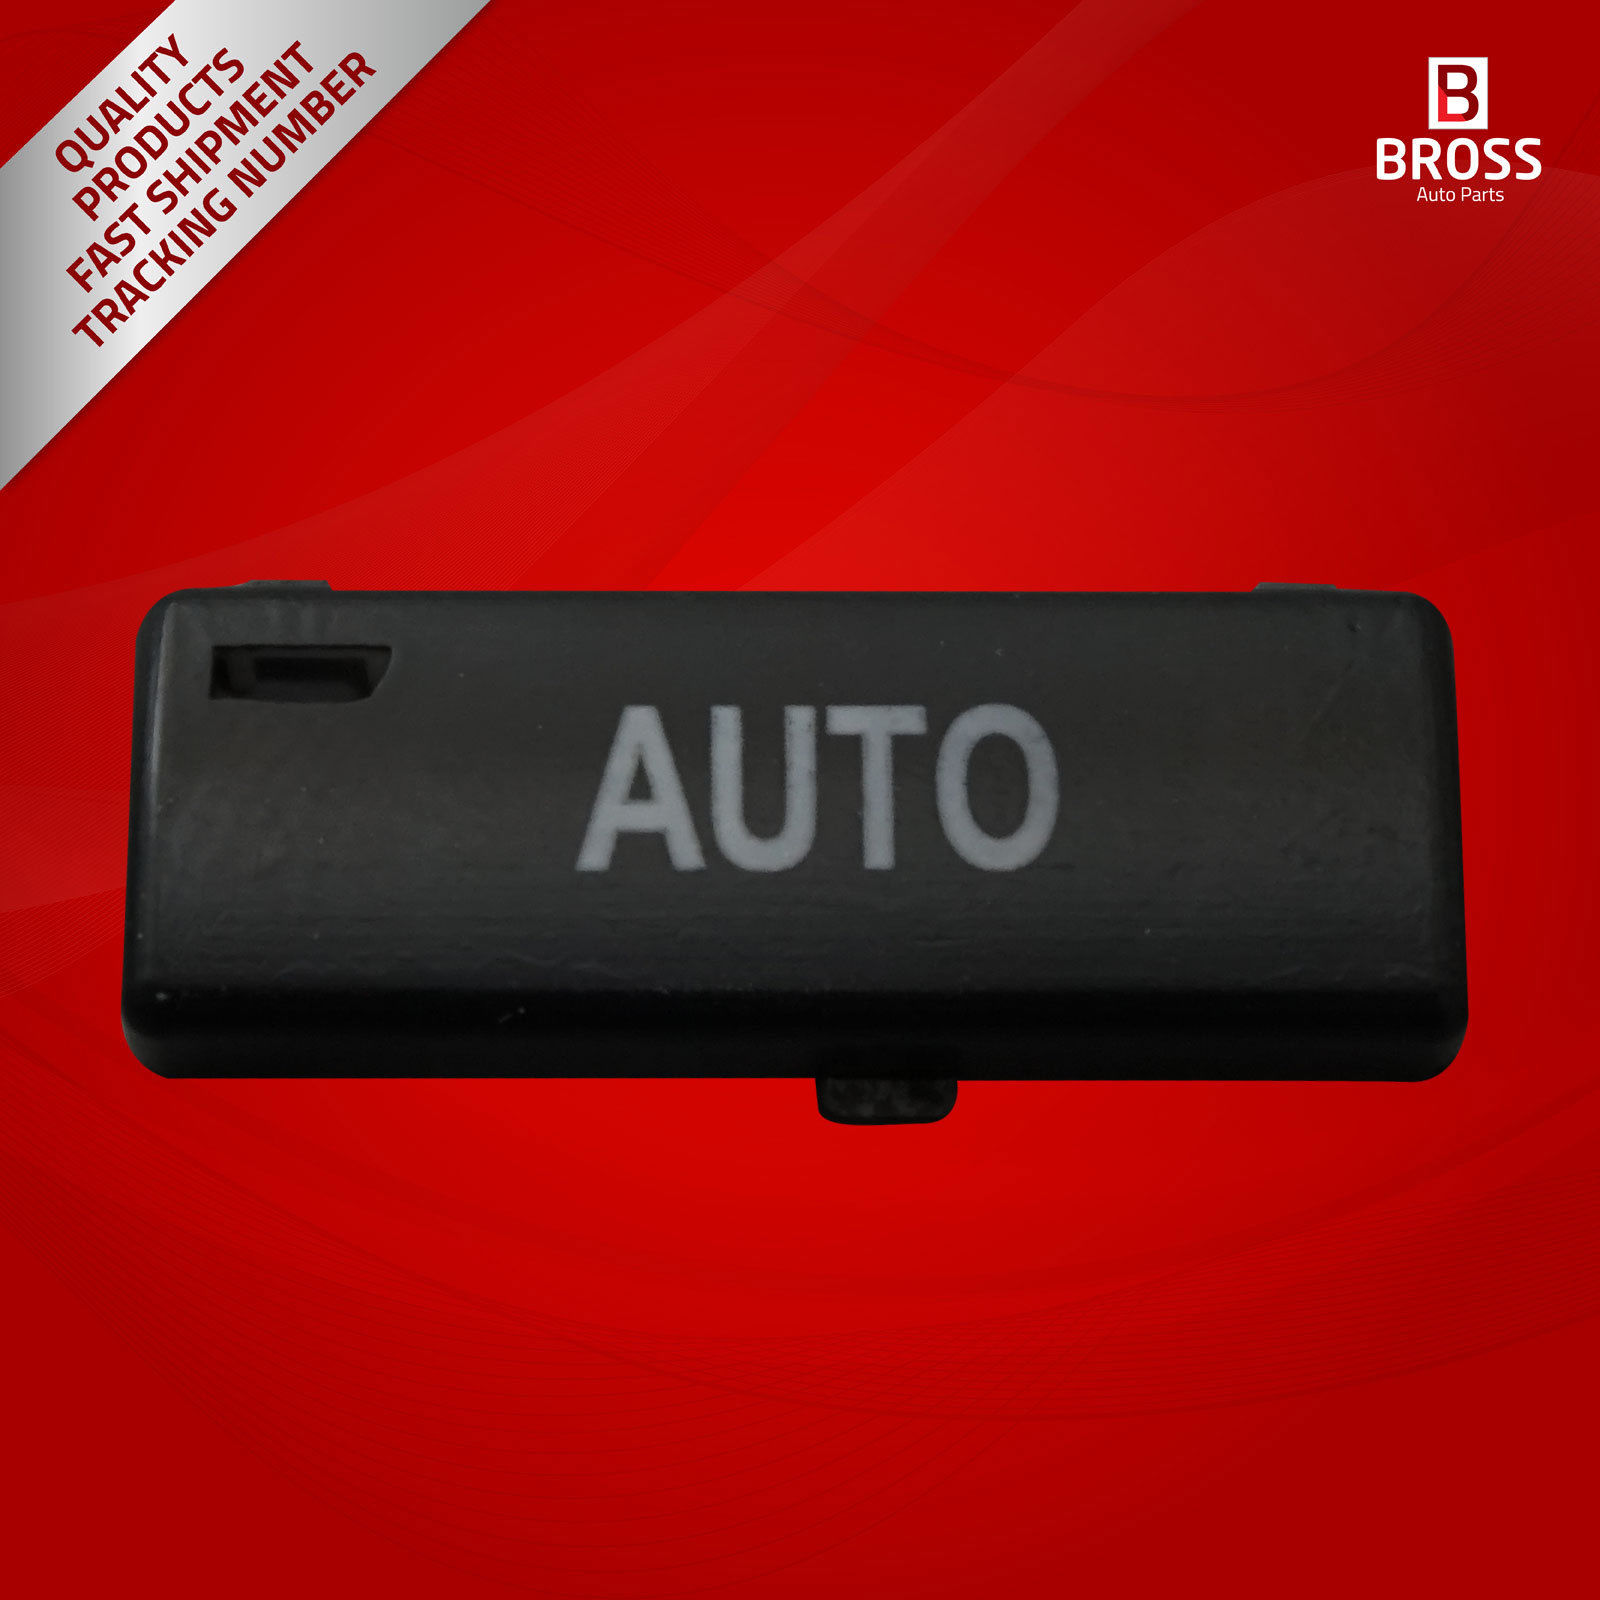 BDP88 4 1 Piece Heater Climate Control Air Conditioning Switch Button Cover #4 For 5 Series X5 E53 2000  2007 E39 1995 2003|A/C & Heater Controls| |  - title=